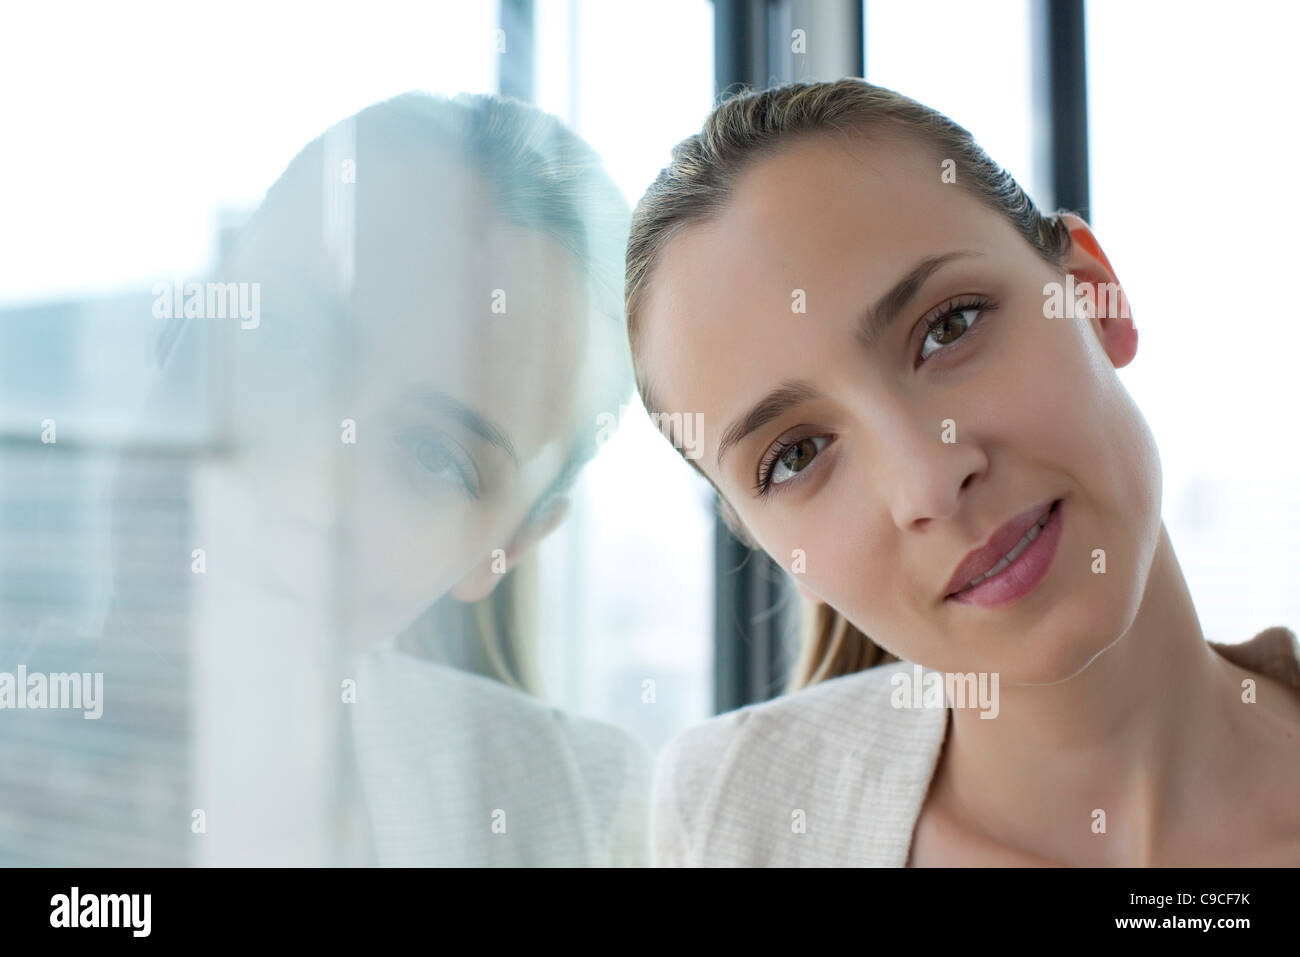 Woman leaning against window, head tilted - Stock Image